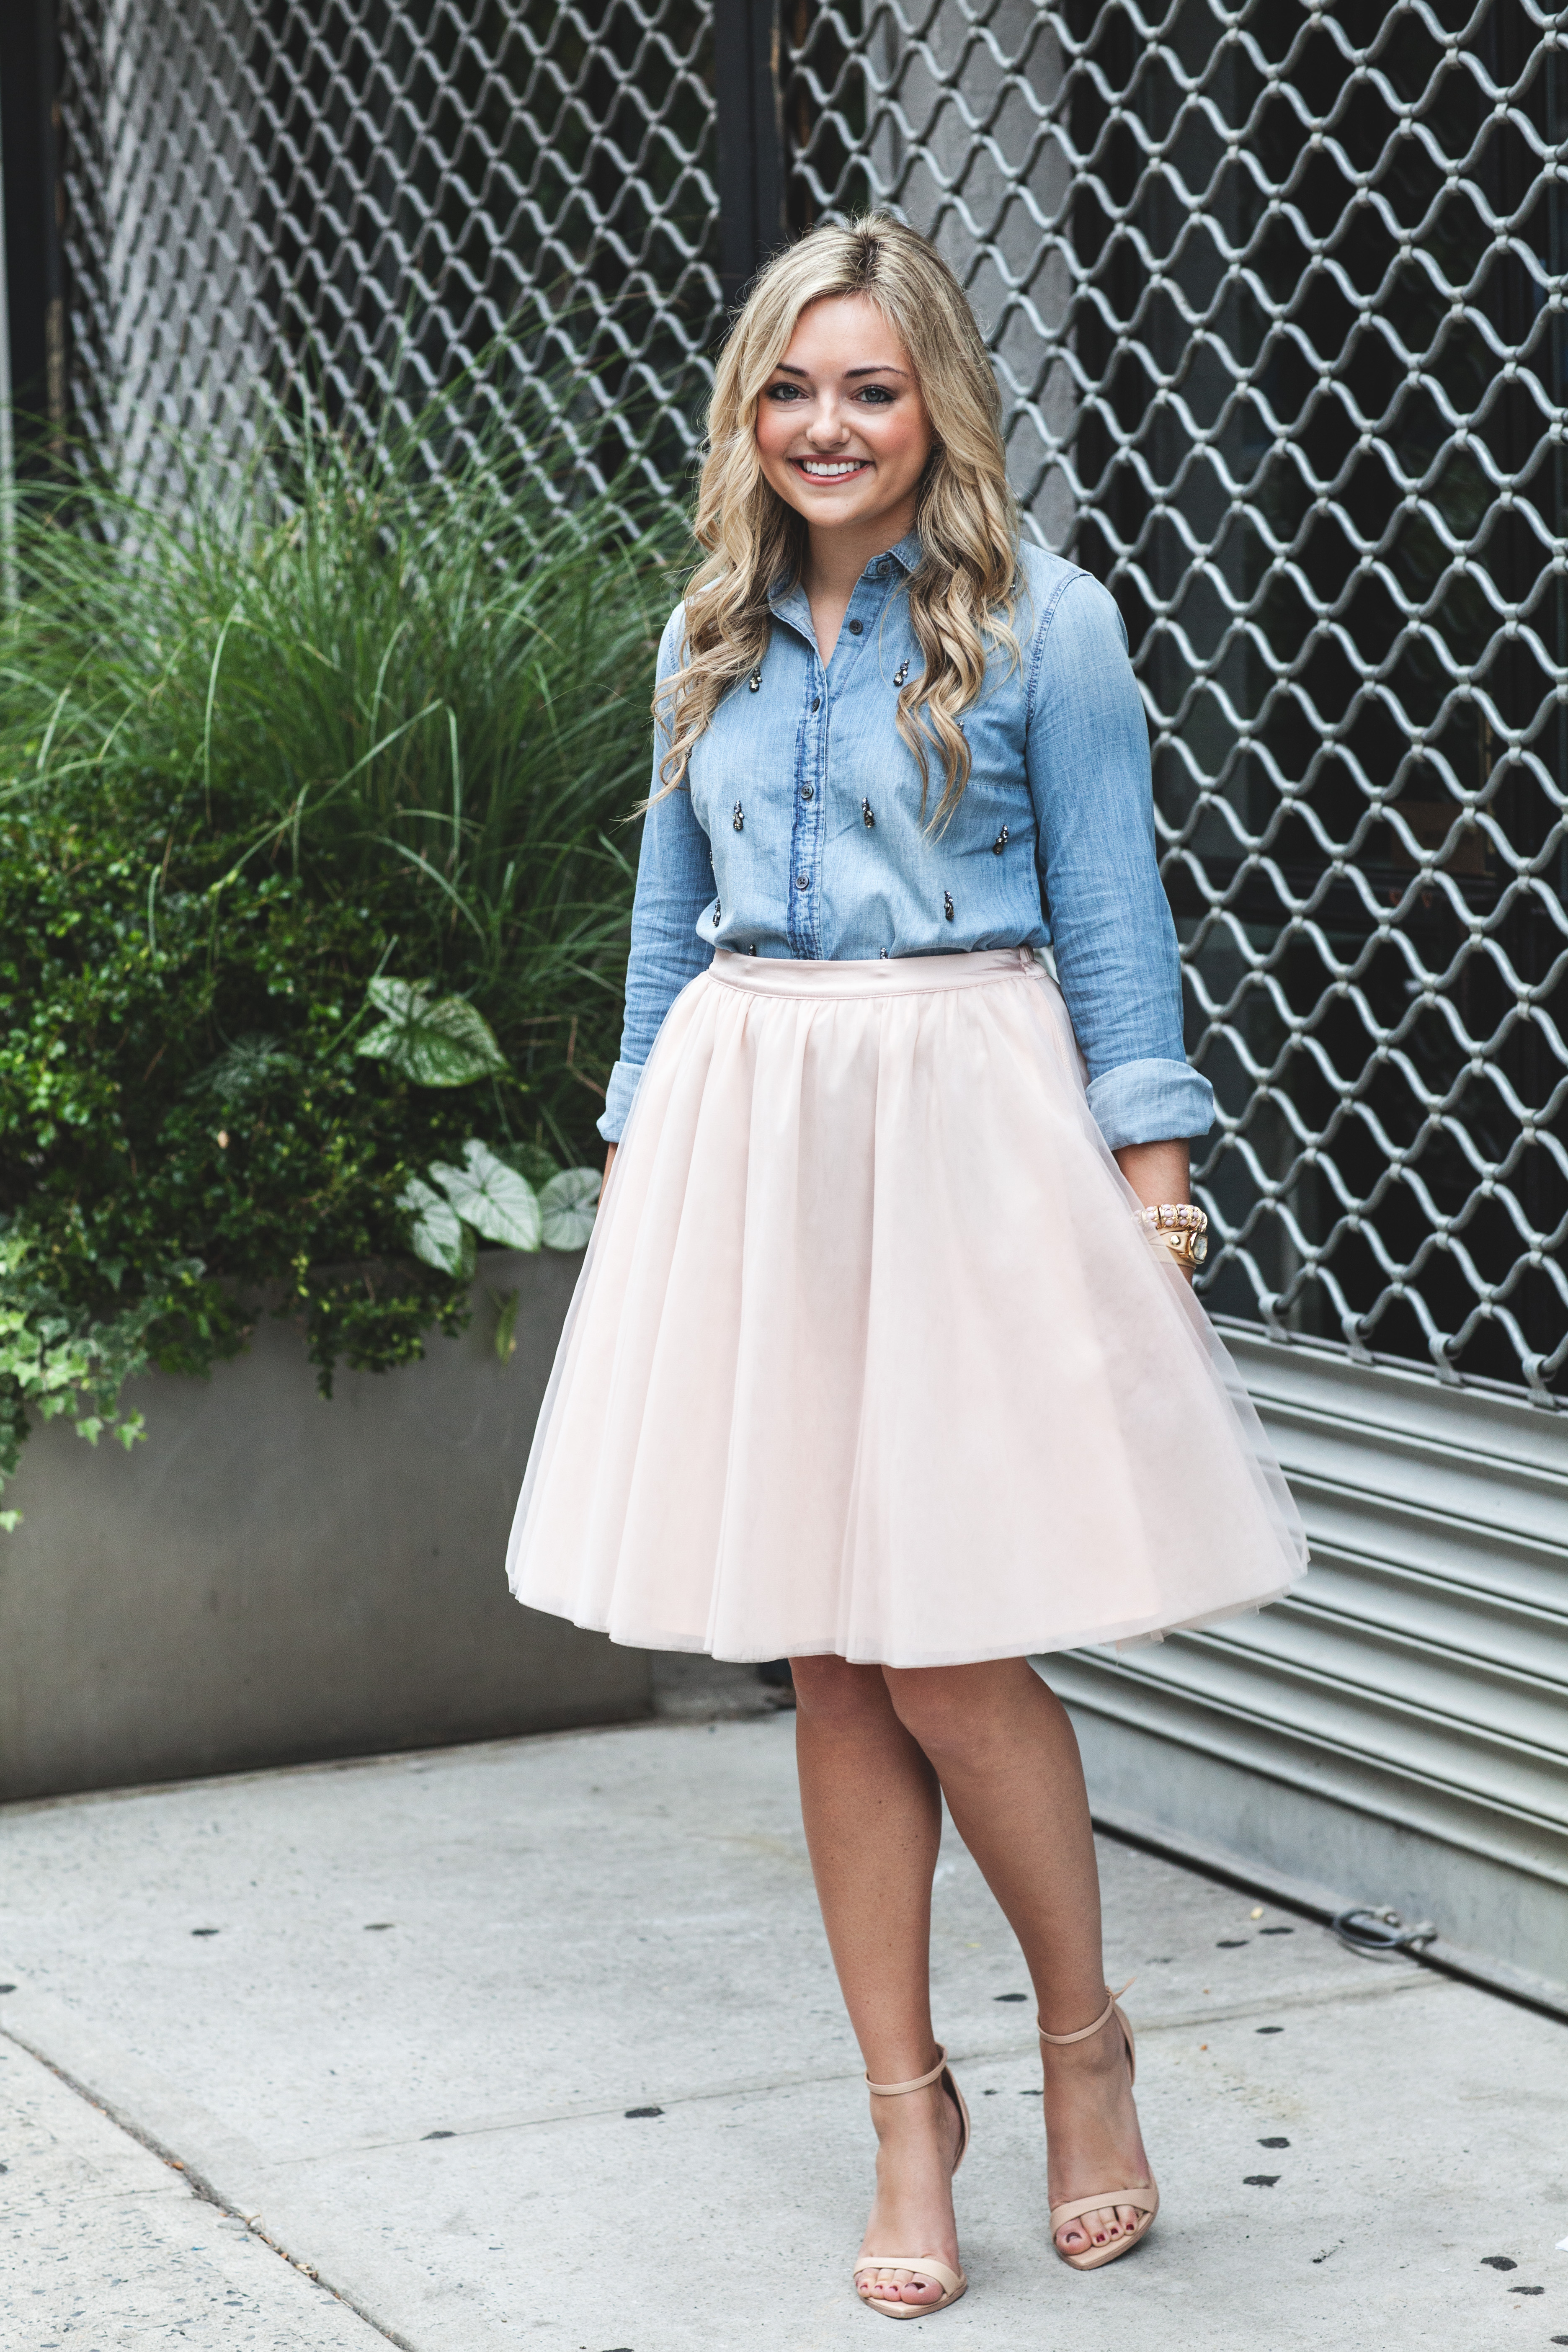 Sep 25,  · I wear denim shirts throughout the year and you gave me a few more ideas to add to my repertoire, like the suede skirt, camo leggings and cord pants. I happen to have all of those items, hadn't thought to pair with a denim shirt.